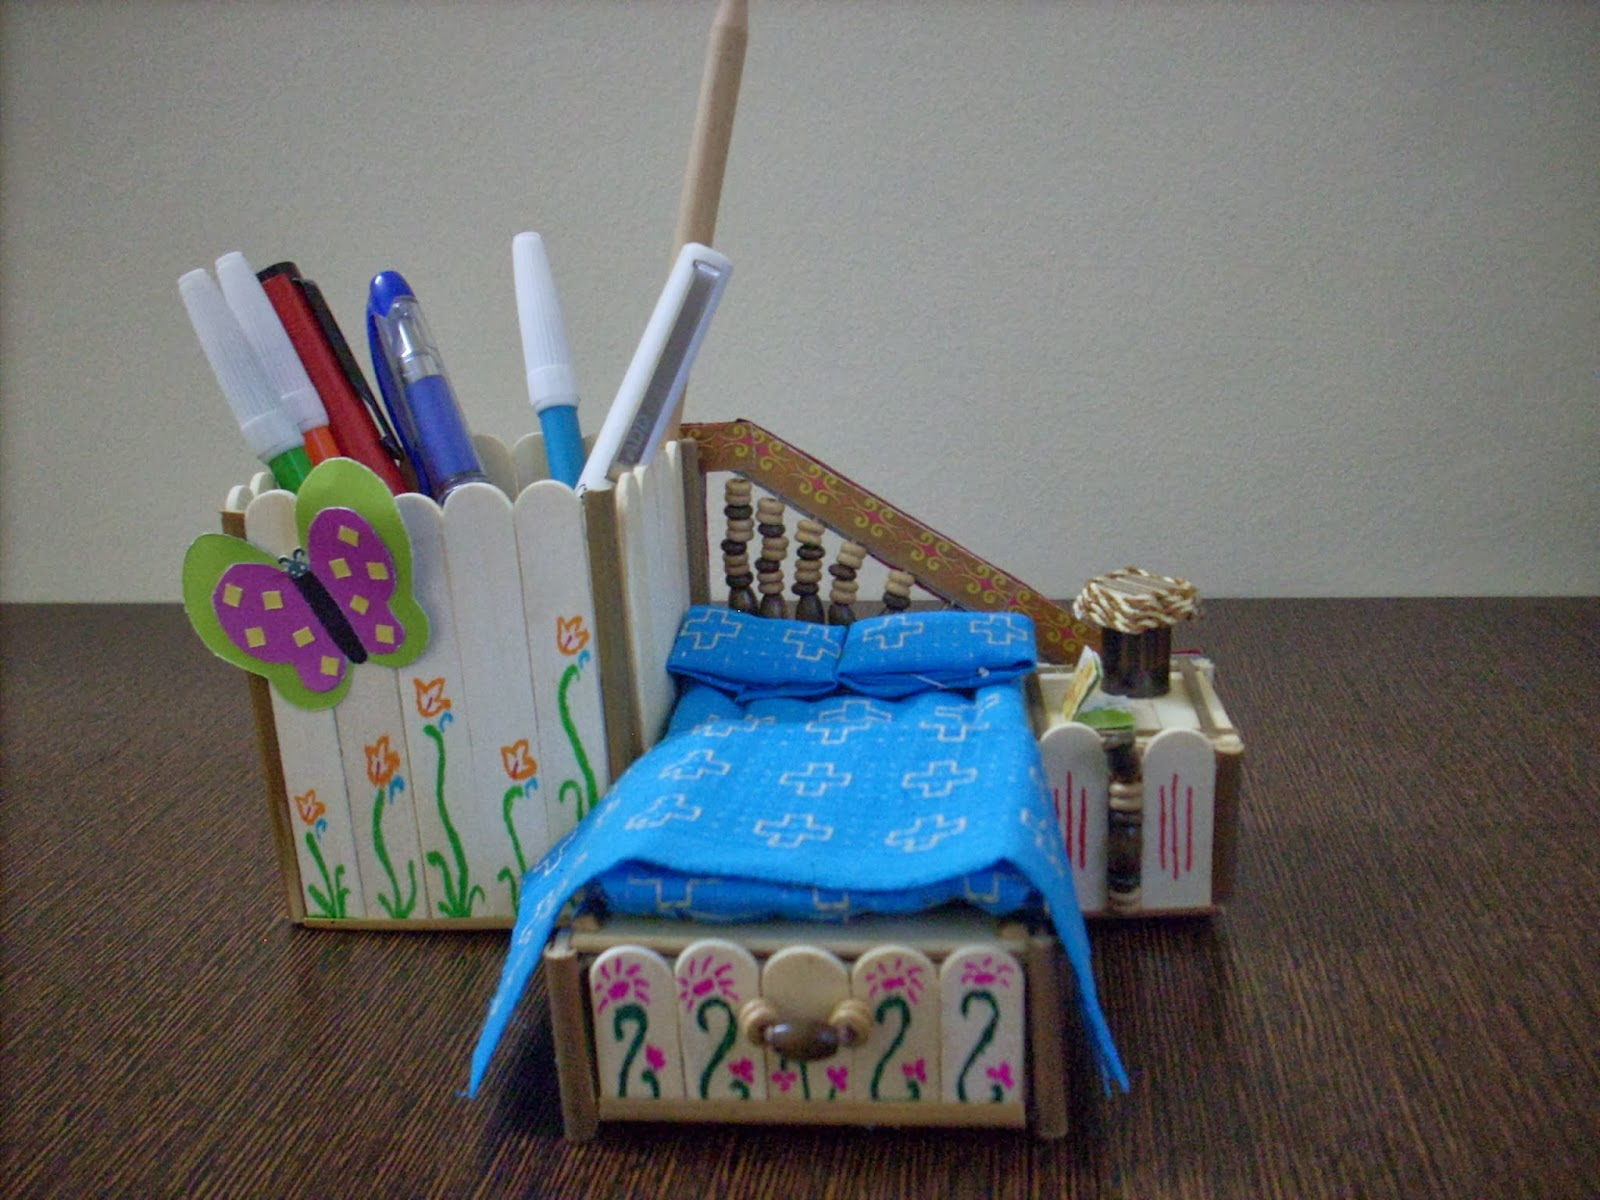 My Daughter Loves Butterflies So We Decorated The Pen Stand Box With Same It Was Fun Creating This